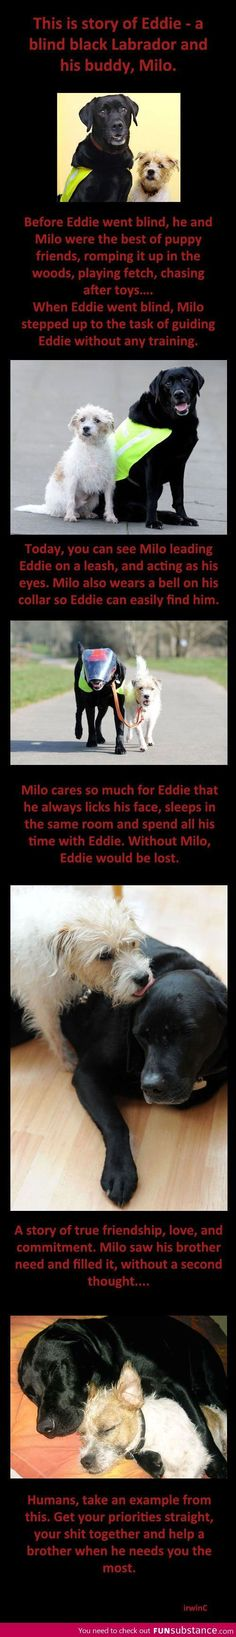 """True friends. The story of Milo"